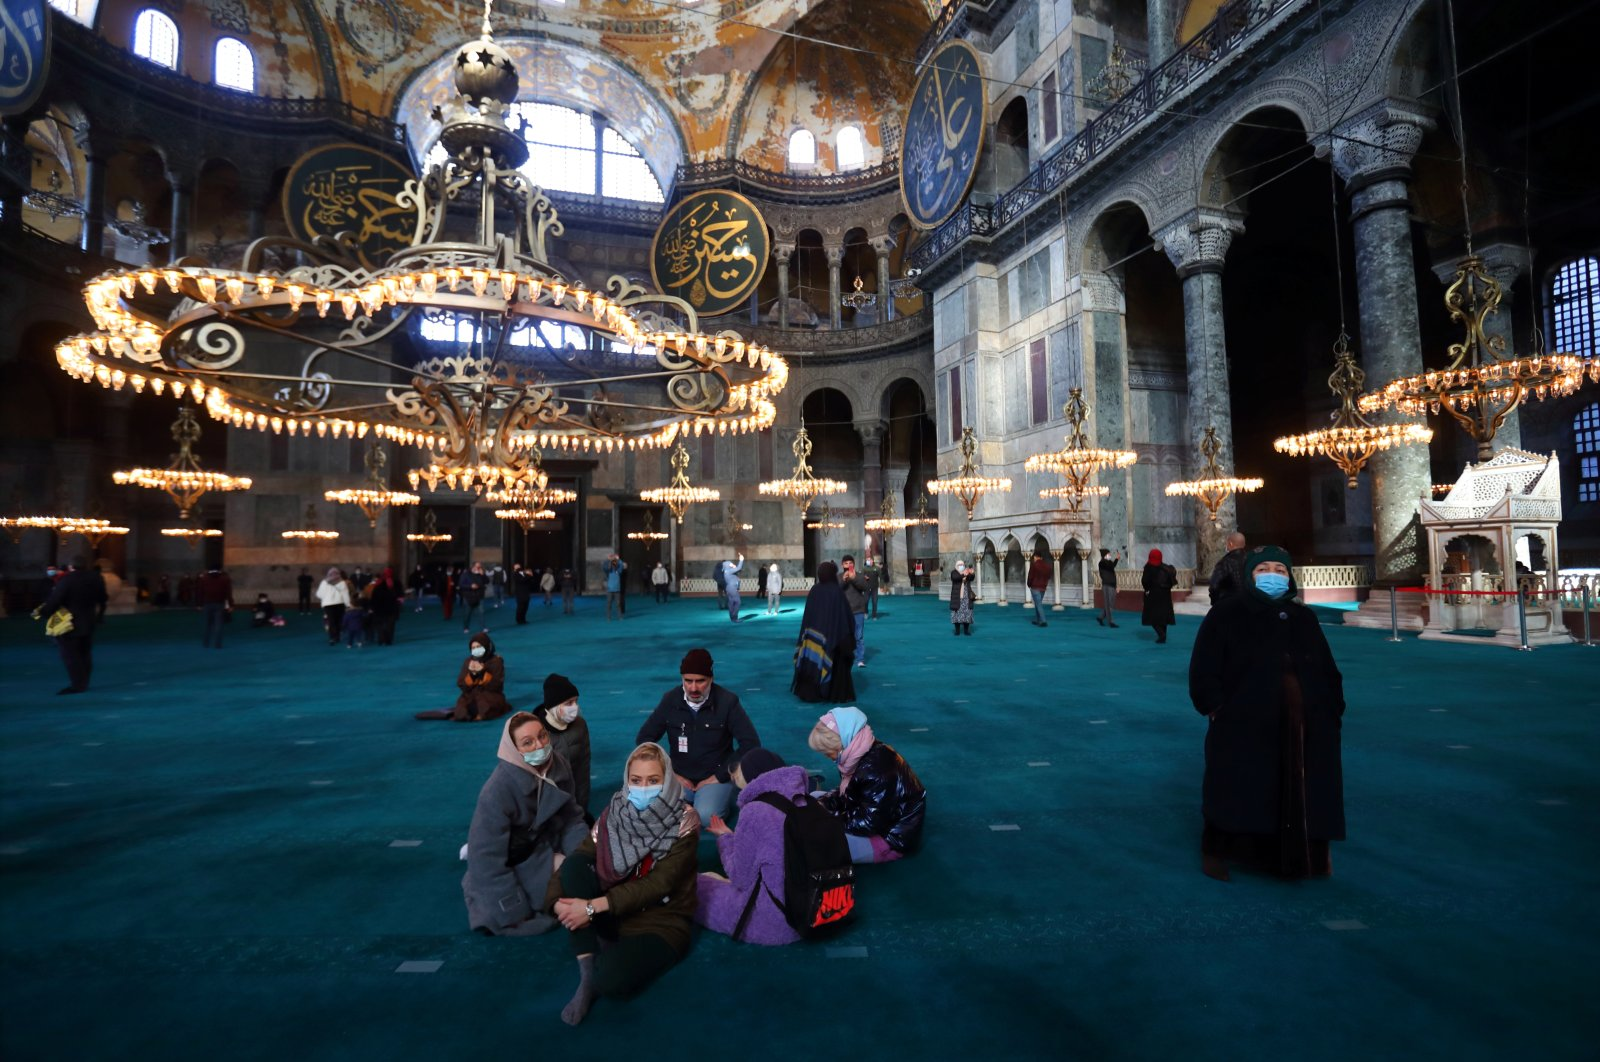 Russian tourists pause as they visit Ayasofya-i Kebir Camii, also known as the Hagia Sophia Grand Mosque, amid the coronavirus disease outbreak in Istanbul, Turkey, Jan. 29, 2021. (Reuters Photo)